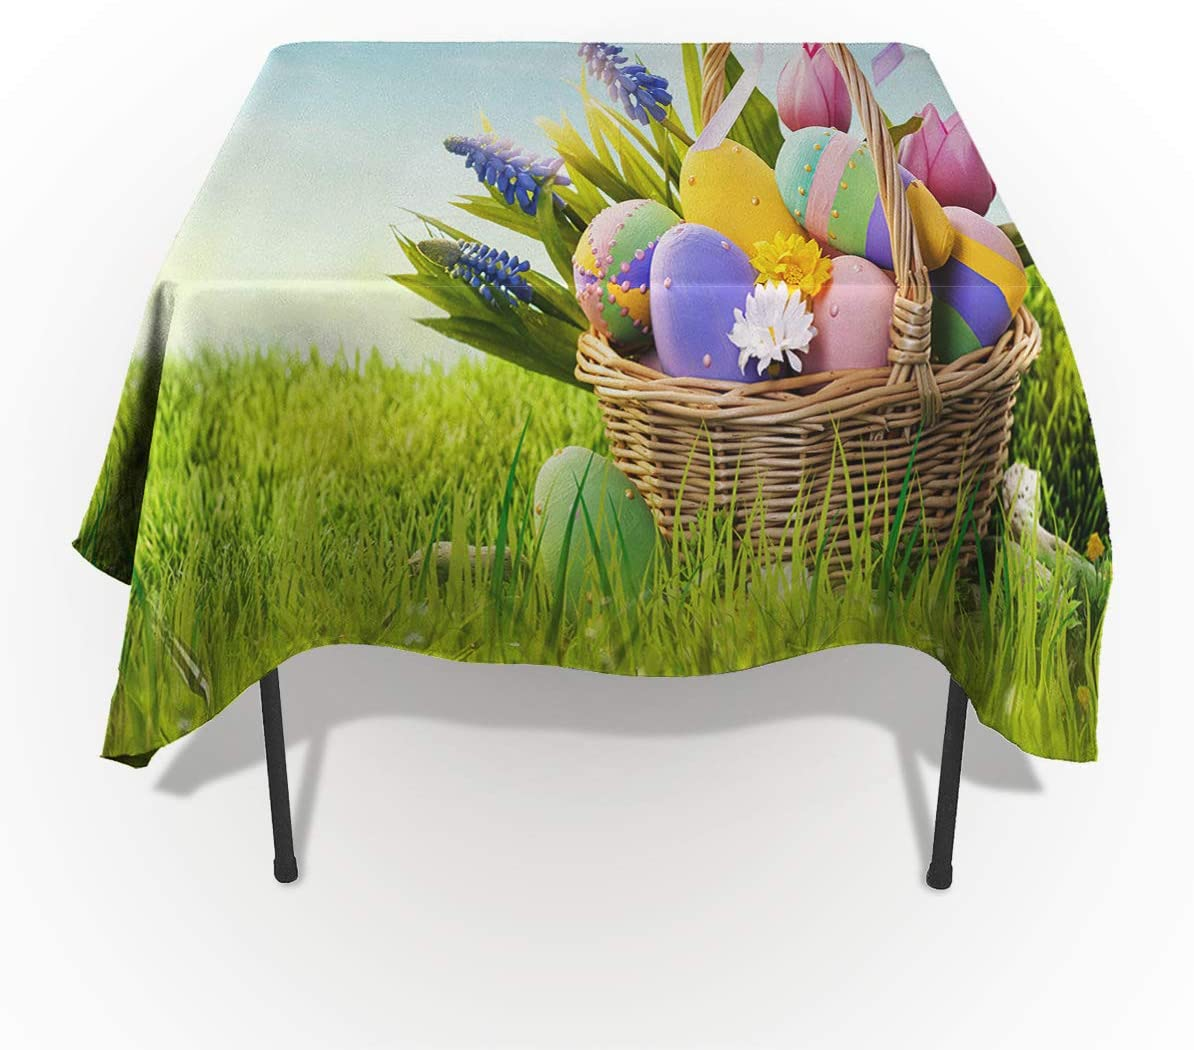 Happy Easter Tablecloths For Square 60 X 60 Inch Table Cover Cotton Linen Fabric Table Cloth For Dining Room Kitchen Ornamental Eggs In Basket Ribbon Decoration Spring Nature Home Kitchen